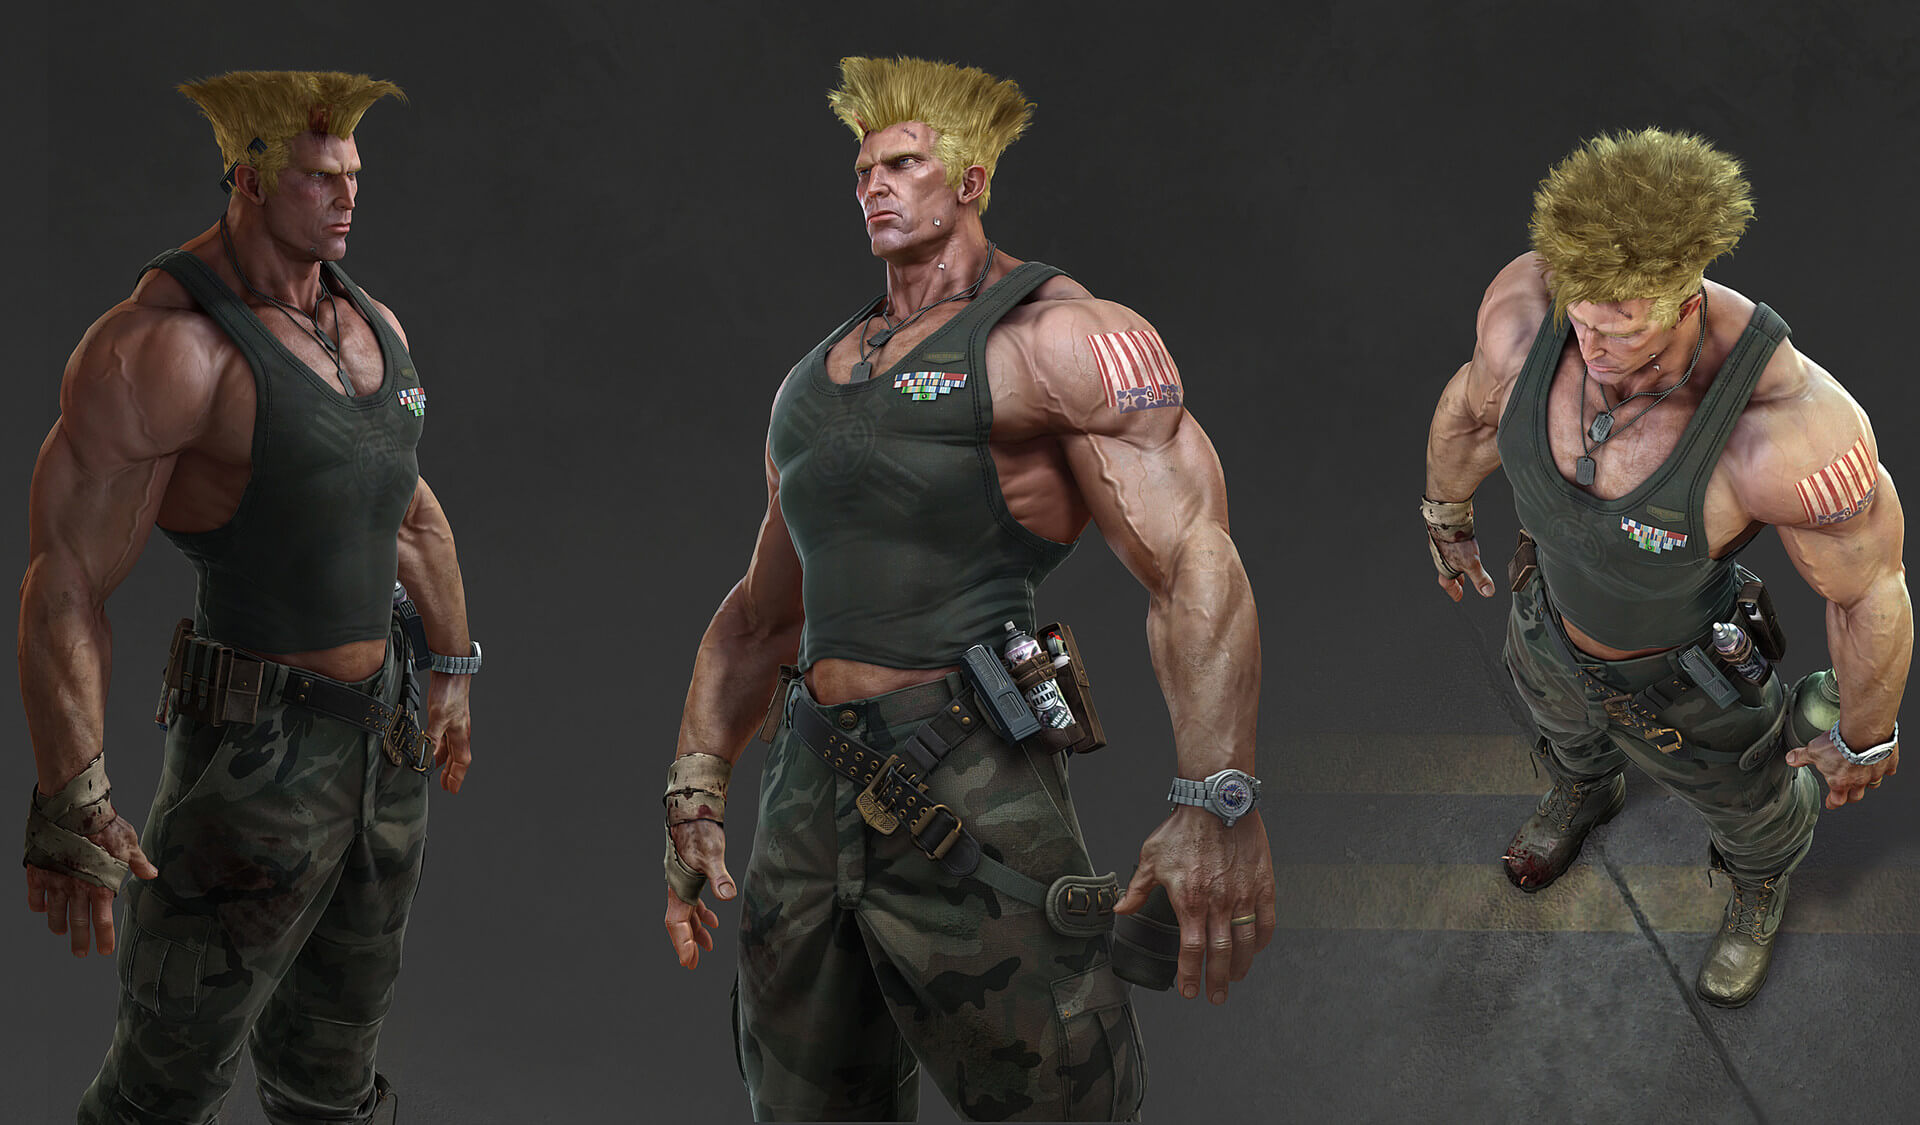 mike-kime-guile-cghub-3.jpg